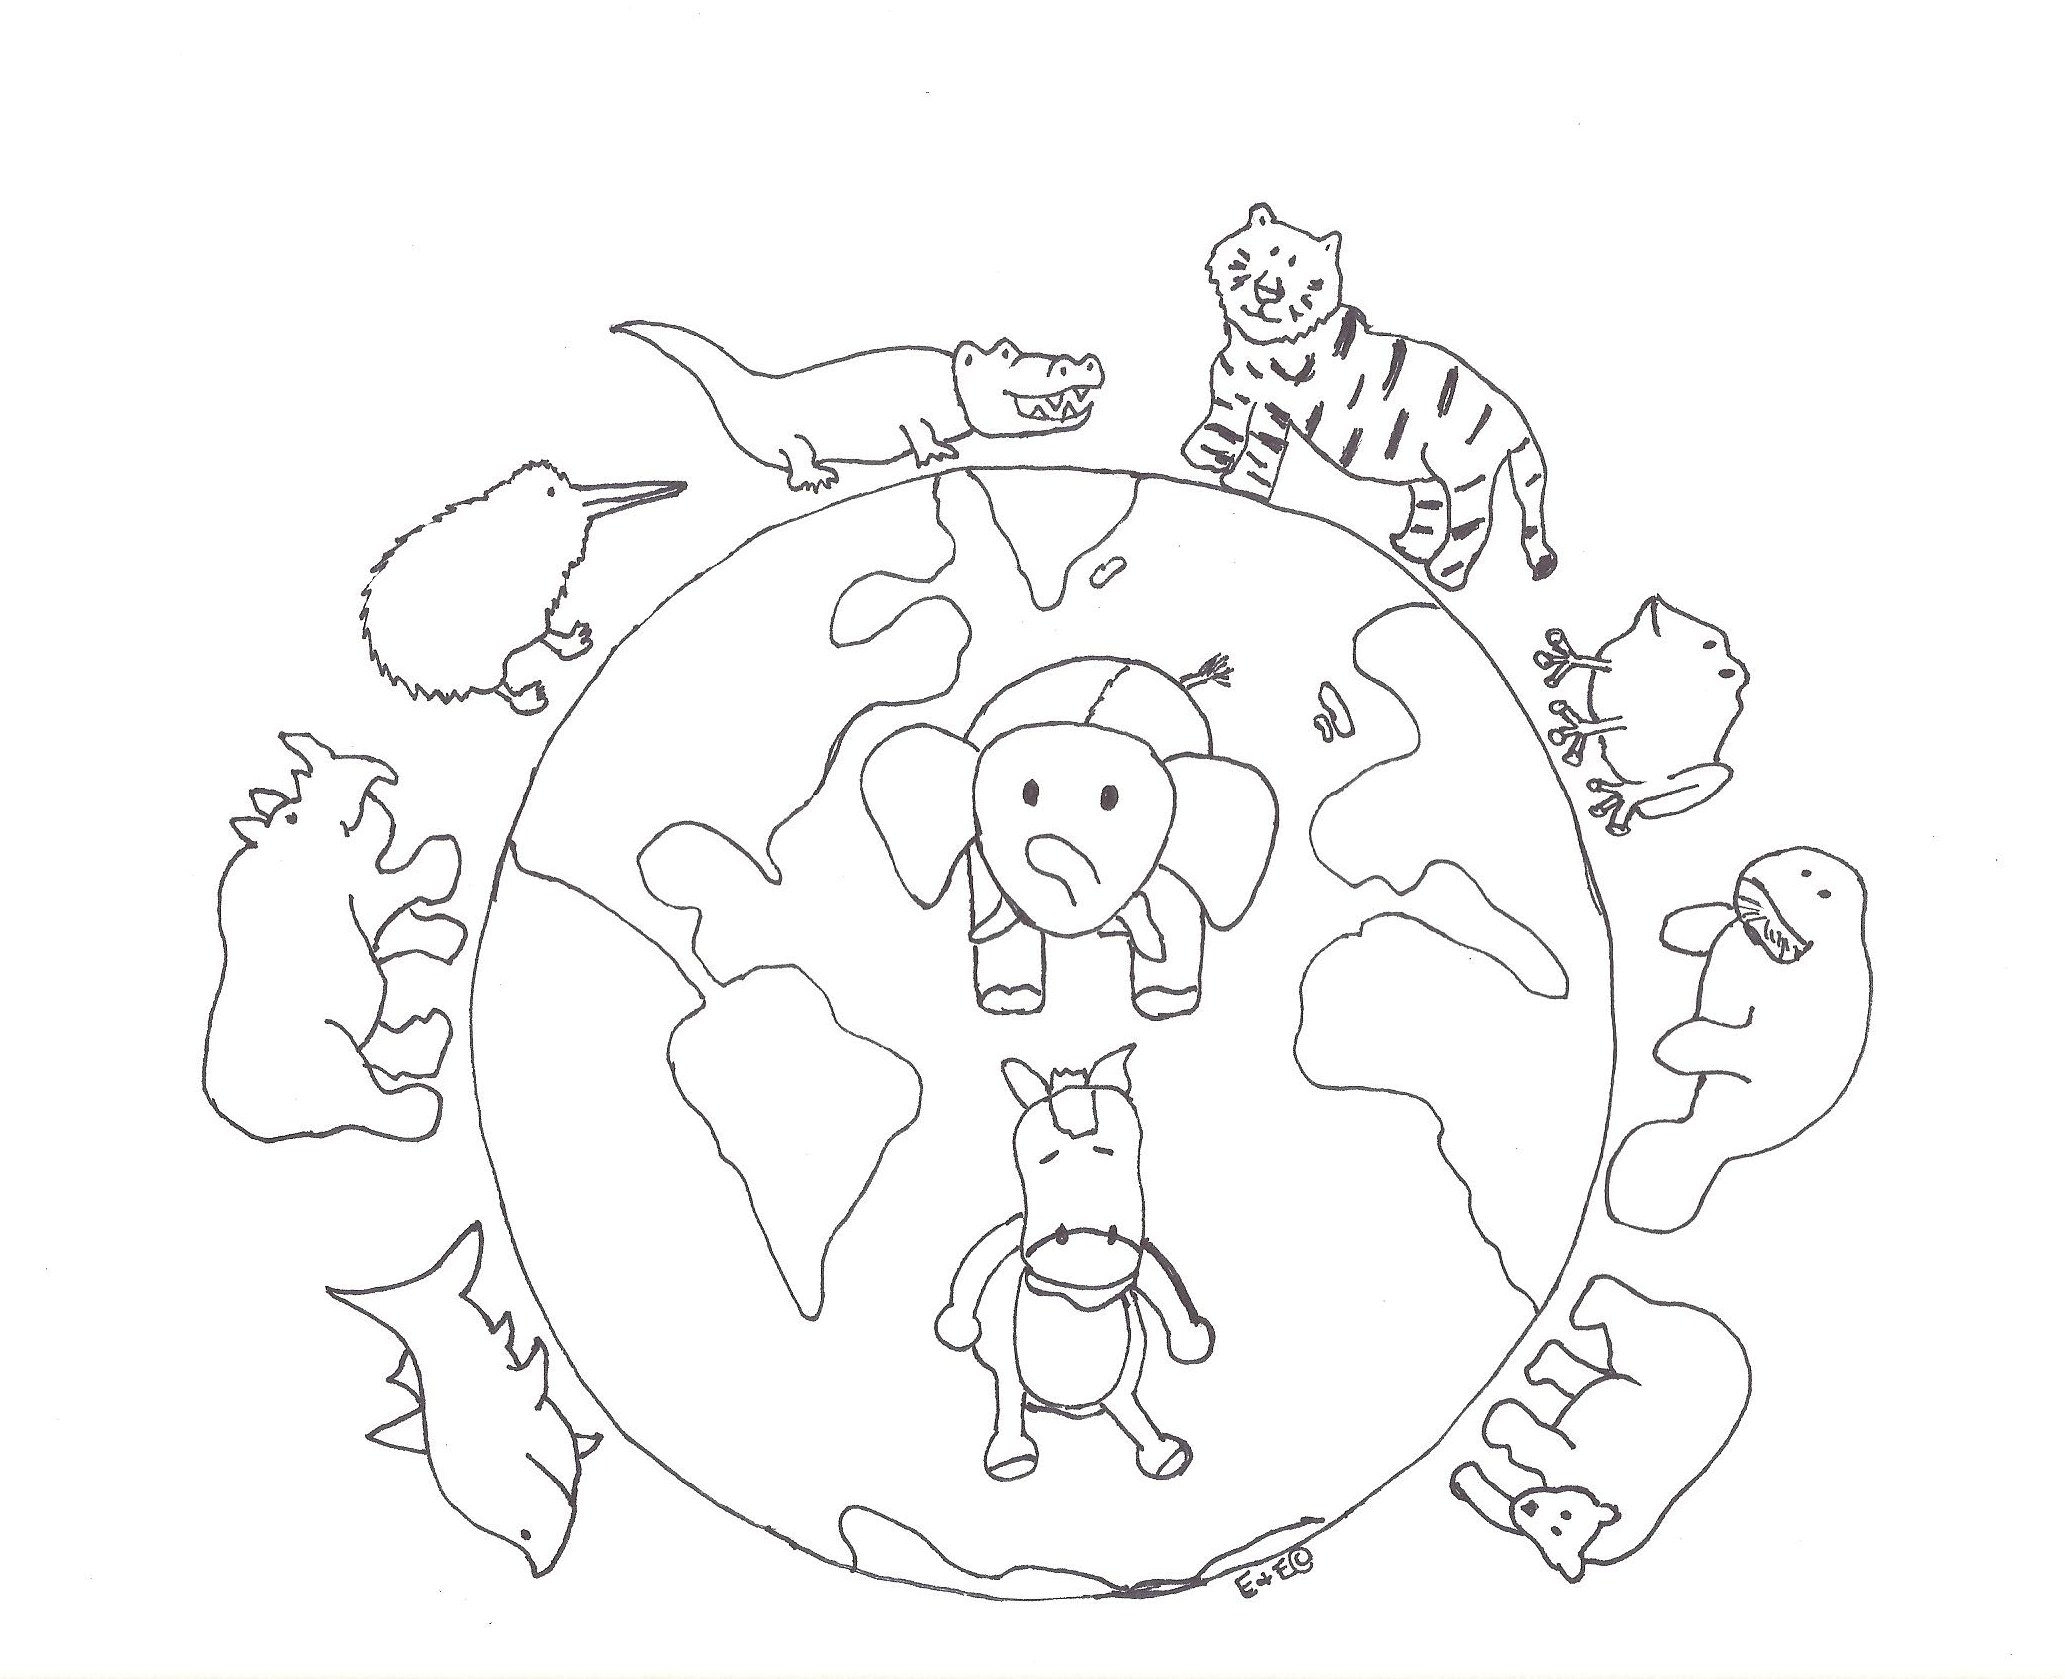 Biodiversity Coloring Coloring Pages